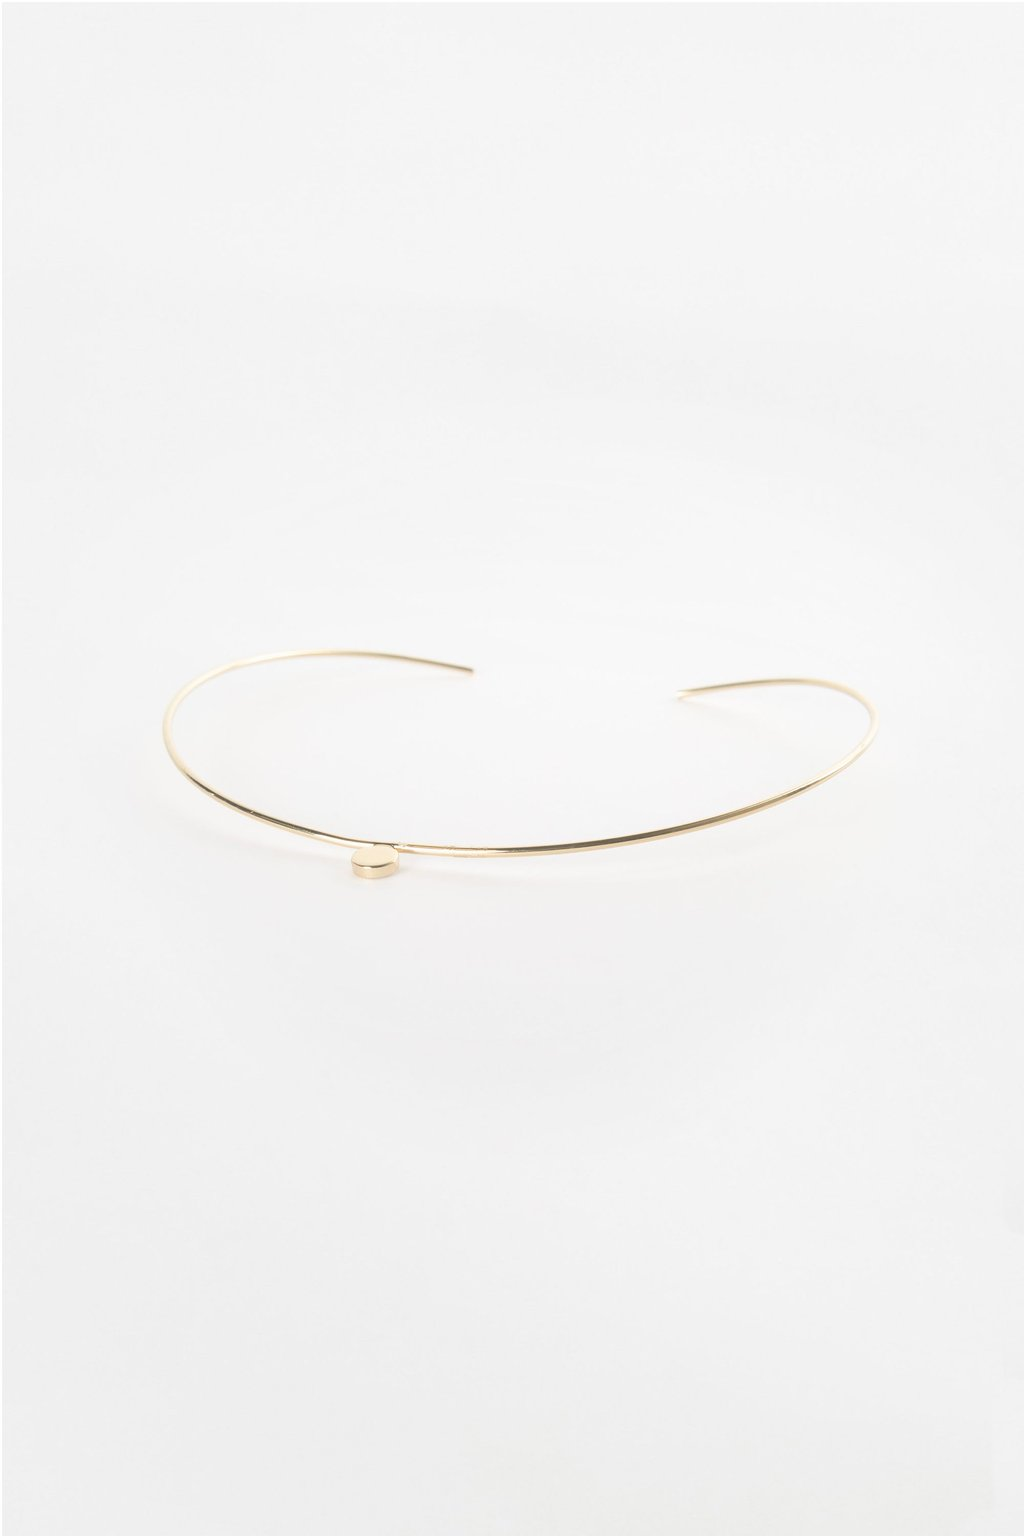 Necklace 92035 Gold 4